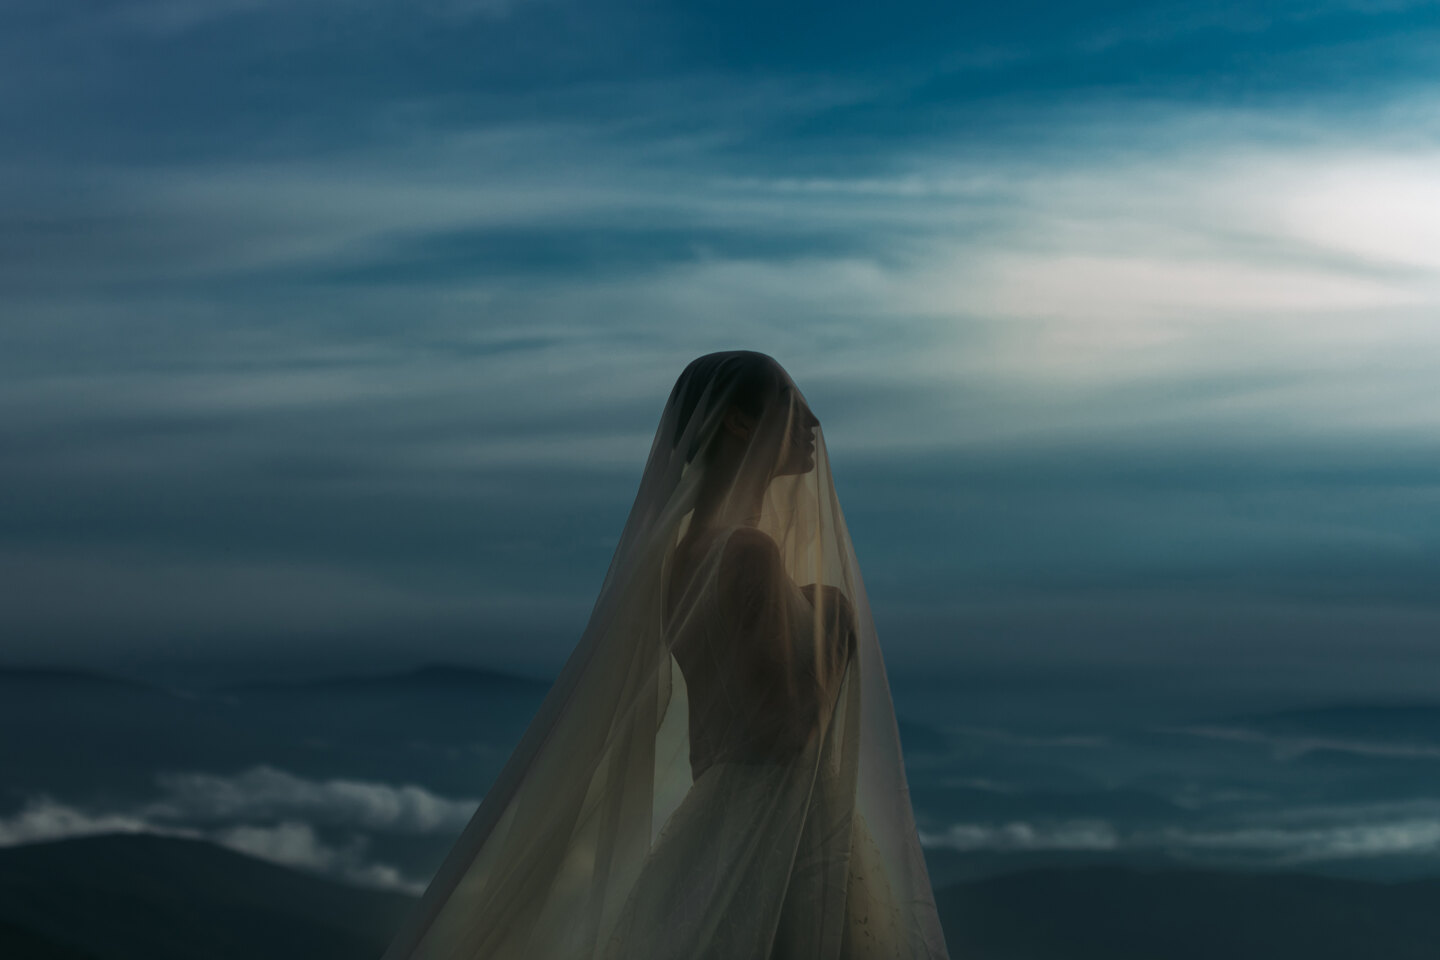 Wedding Photographer in Naples: Portrait of a bride in a wedding dress with a veil that covers her face, against a blue sky